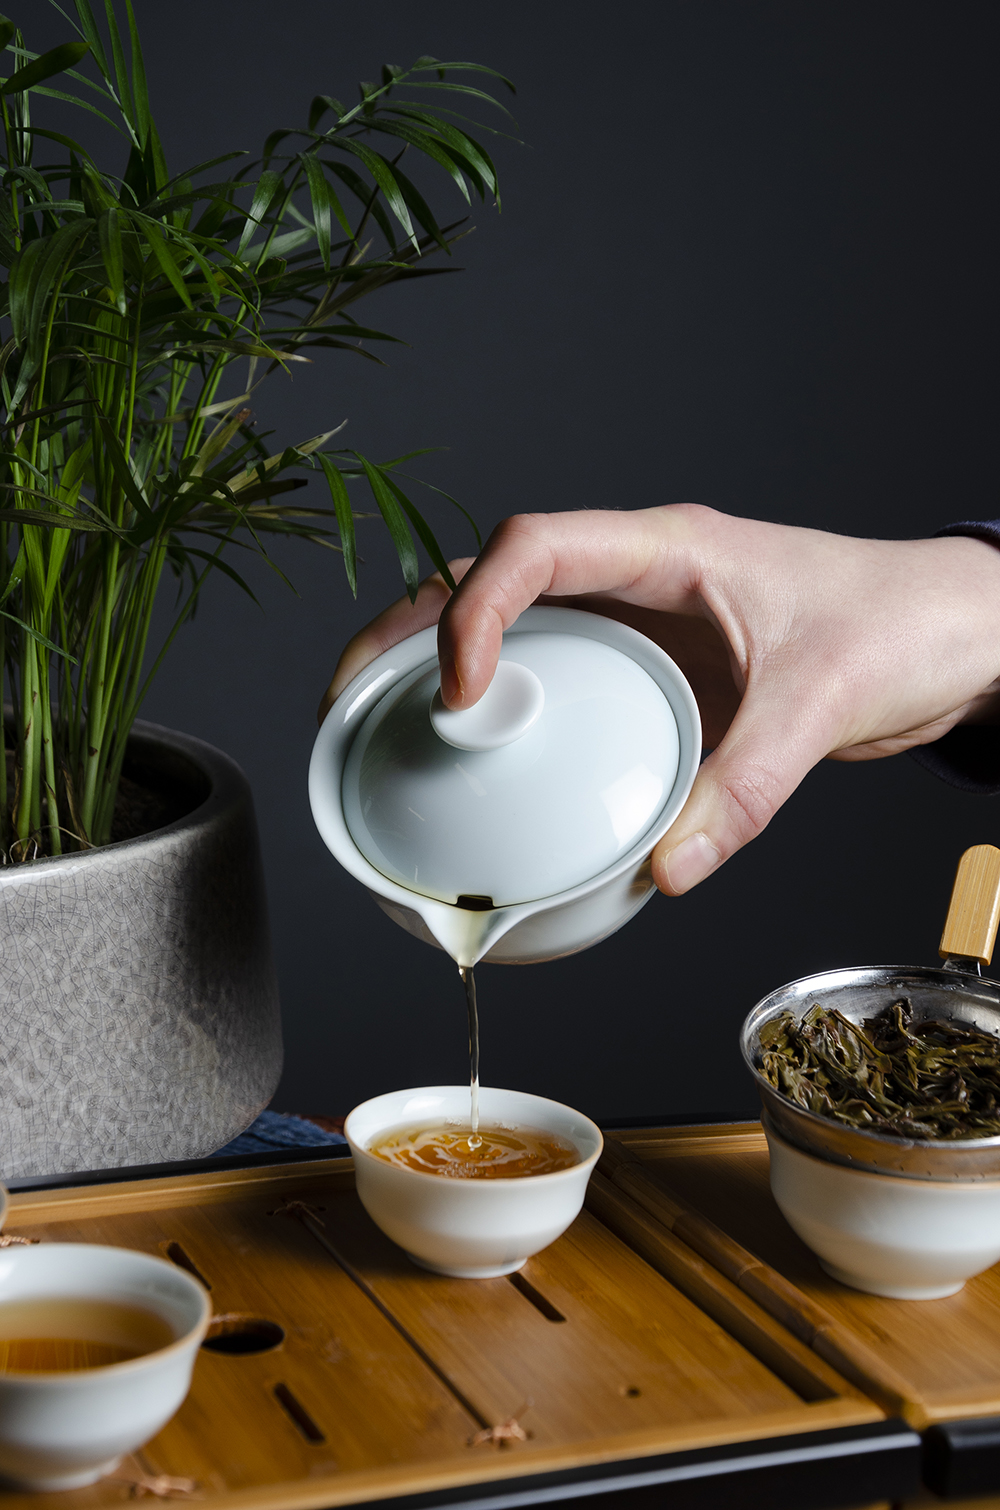 Verdant Tea's Laoshan Gongfu Black Tea being poured into a serving cup // Photo by Aaron Job